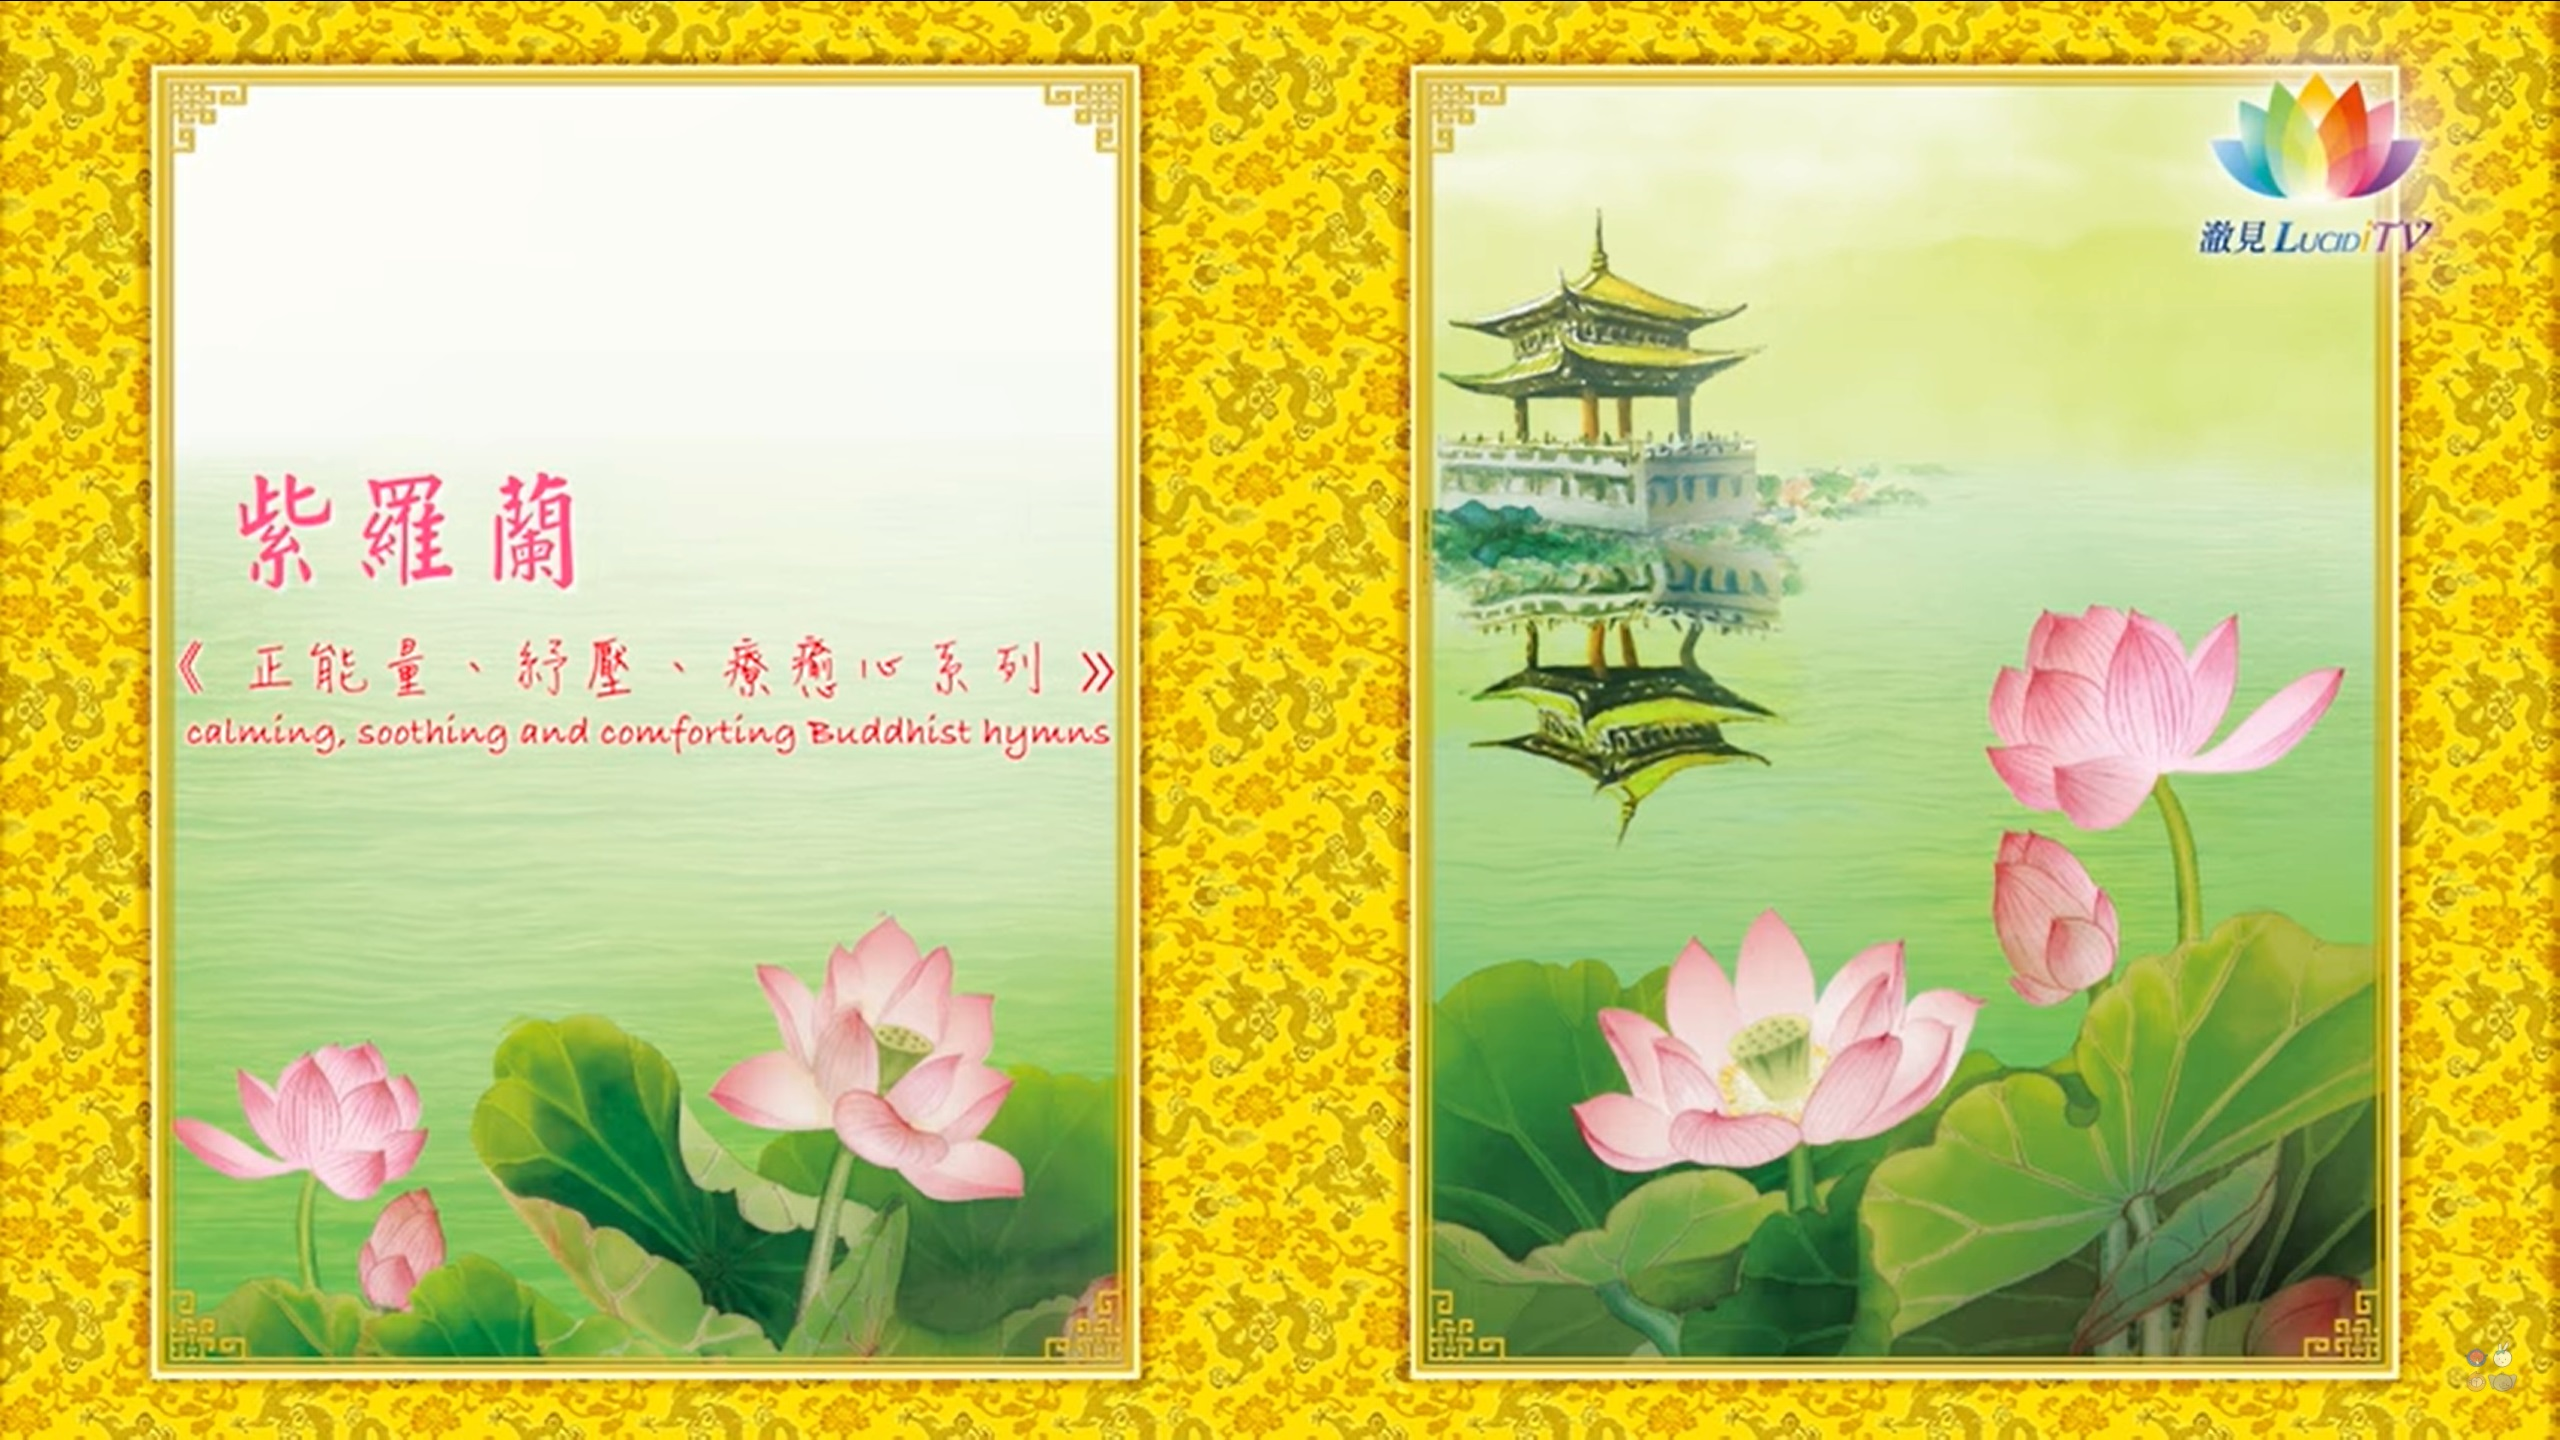 HEARTSTRINGS OF PRAISE:《在這個時候:祝福您》IN THIS MOMENT: A GIFT OF MELODY 25.10.2020